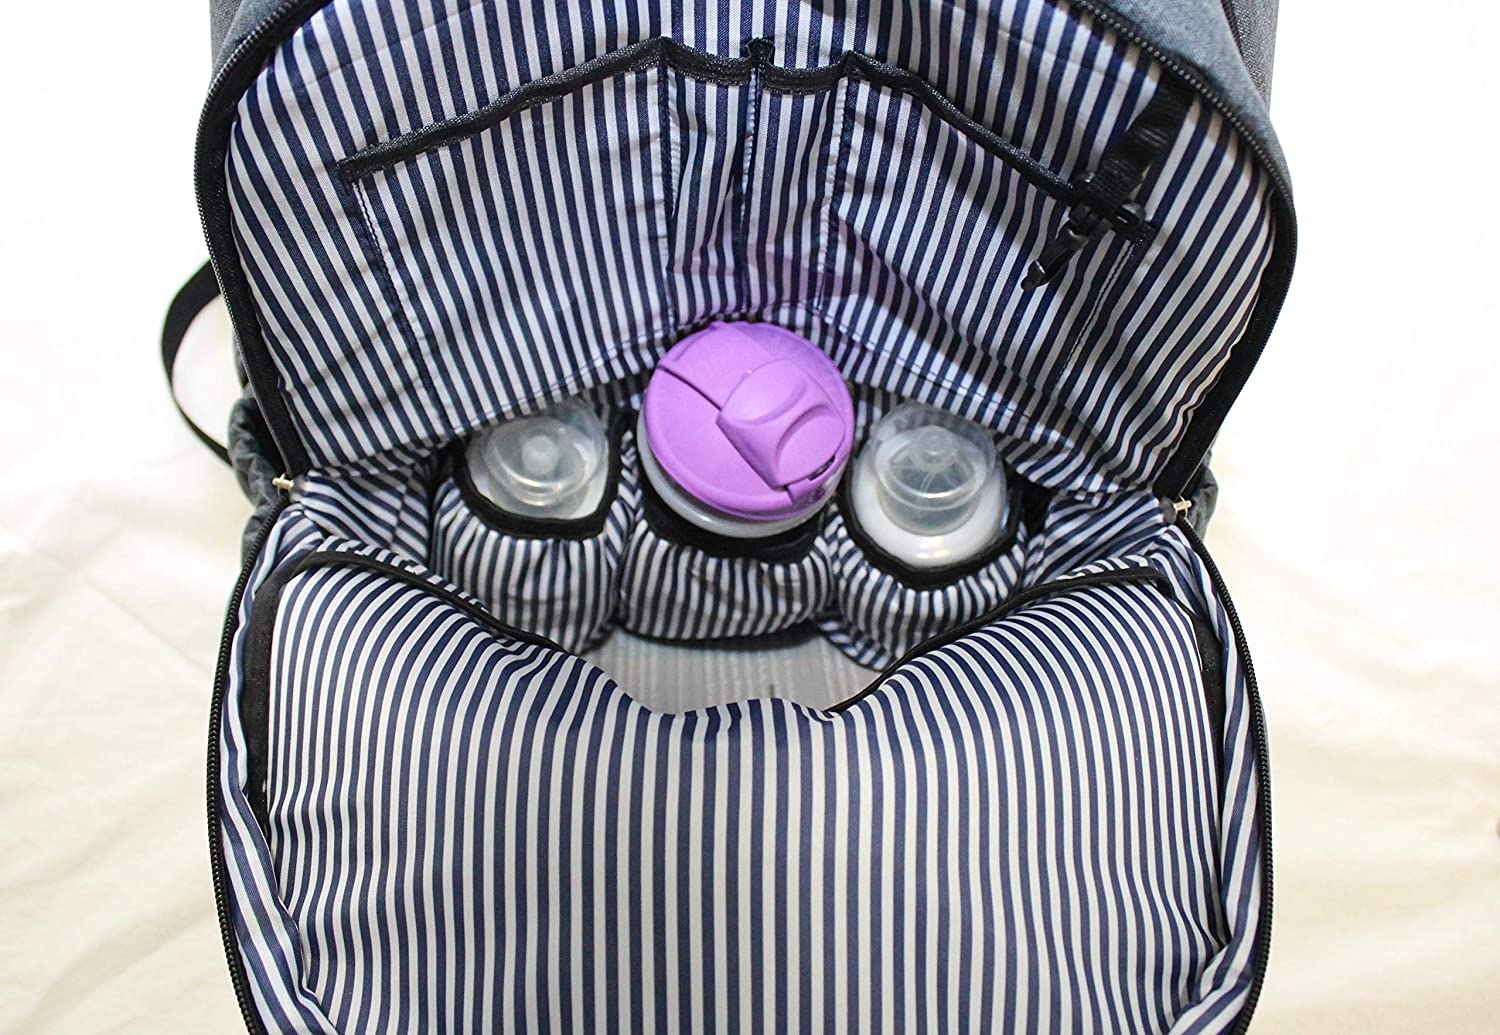 Large Capacity Tote Water Resistant Insulated Pockets Diaper Bag Backpack for Baby by Khotso DarkGrey W Stroller Straps /& Change Pad Free eBook